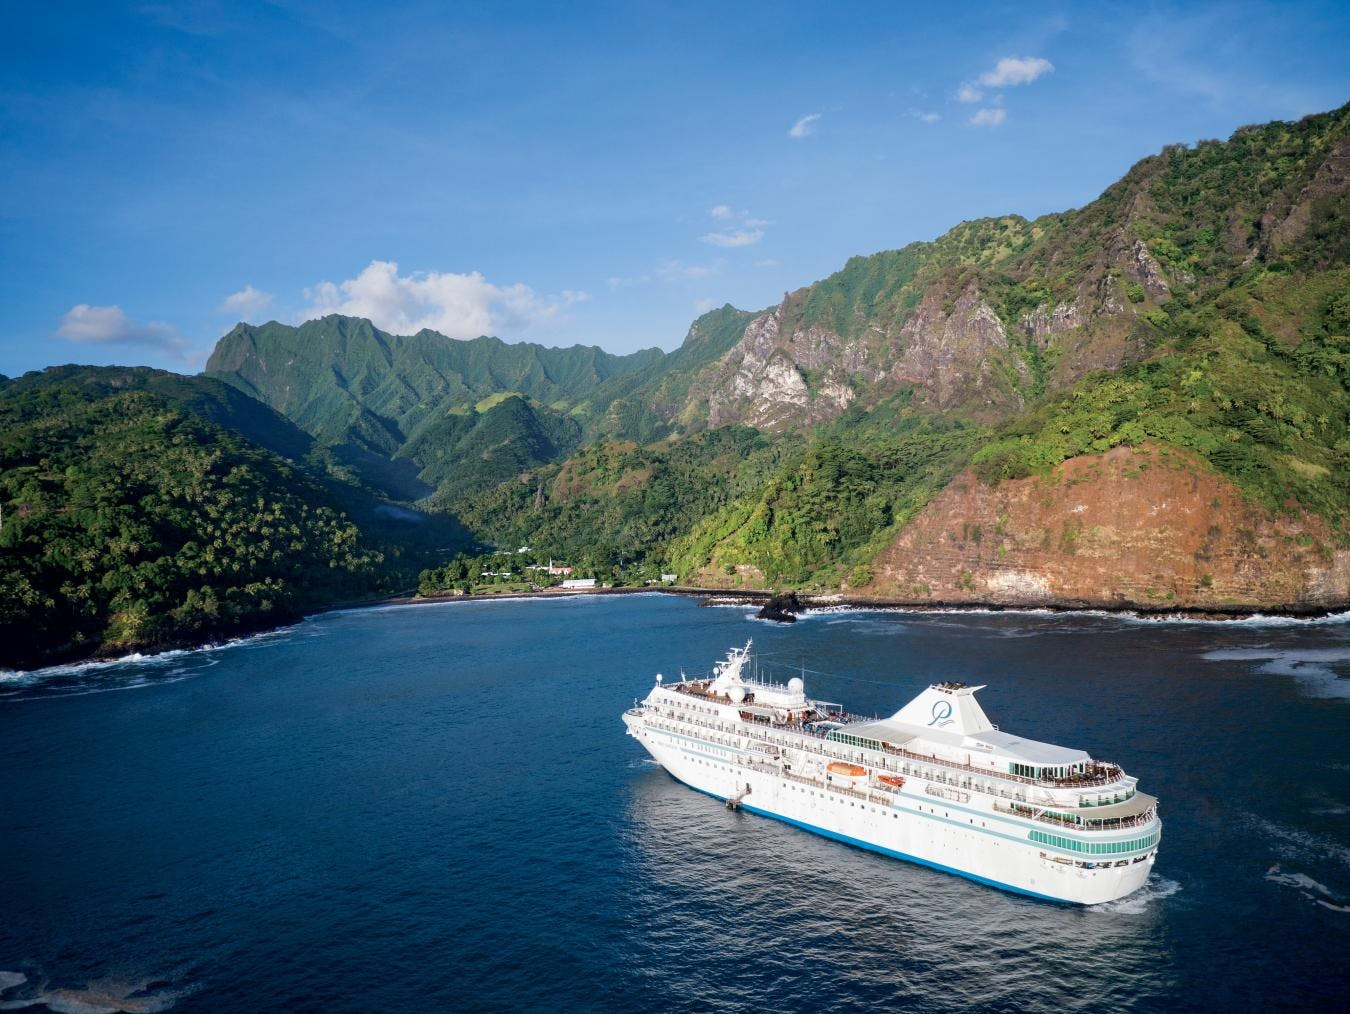 Paul Gauguin Cruises up close in the South Pacific.